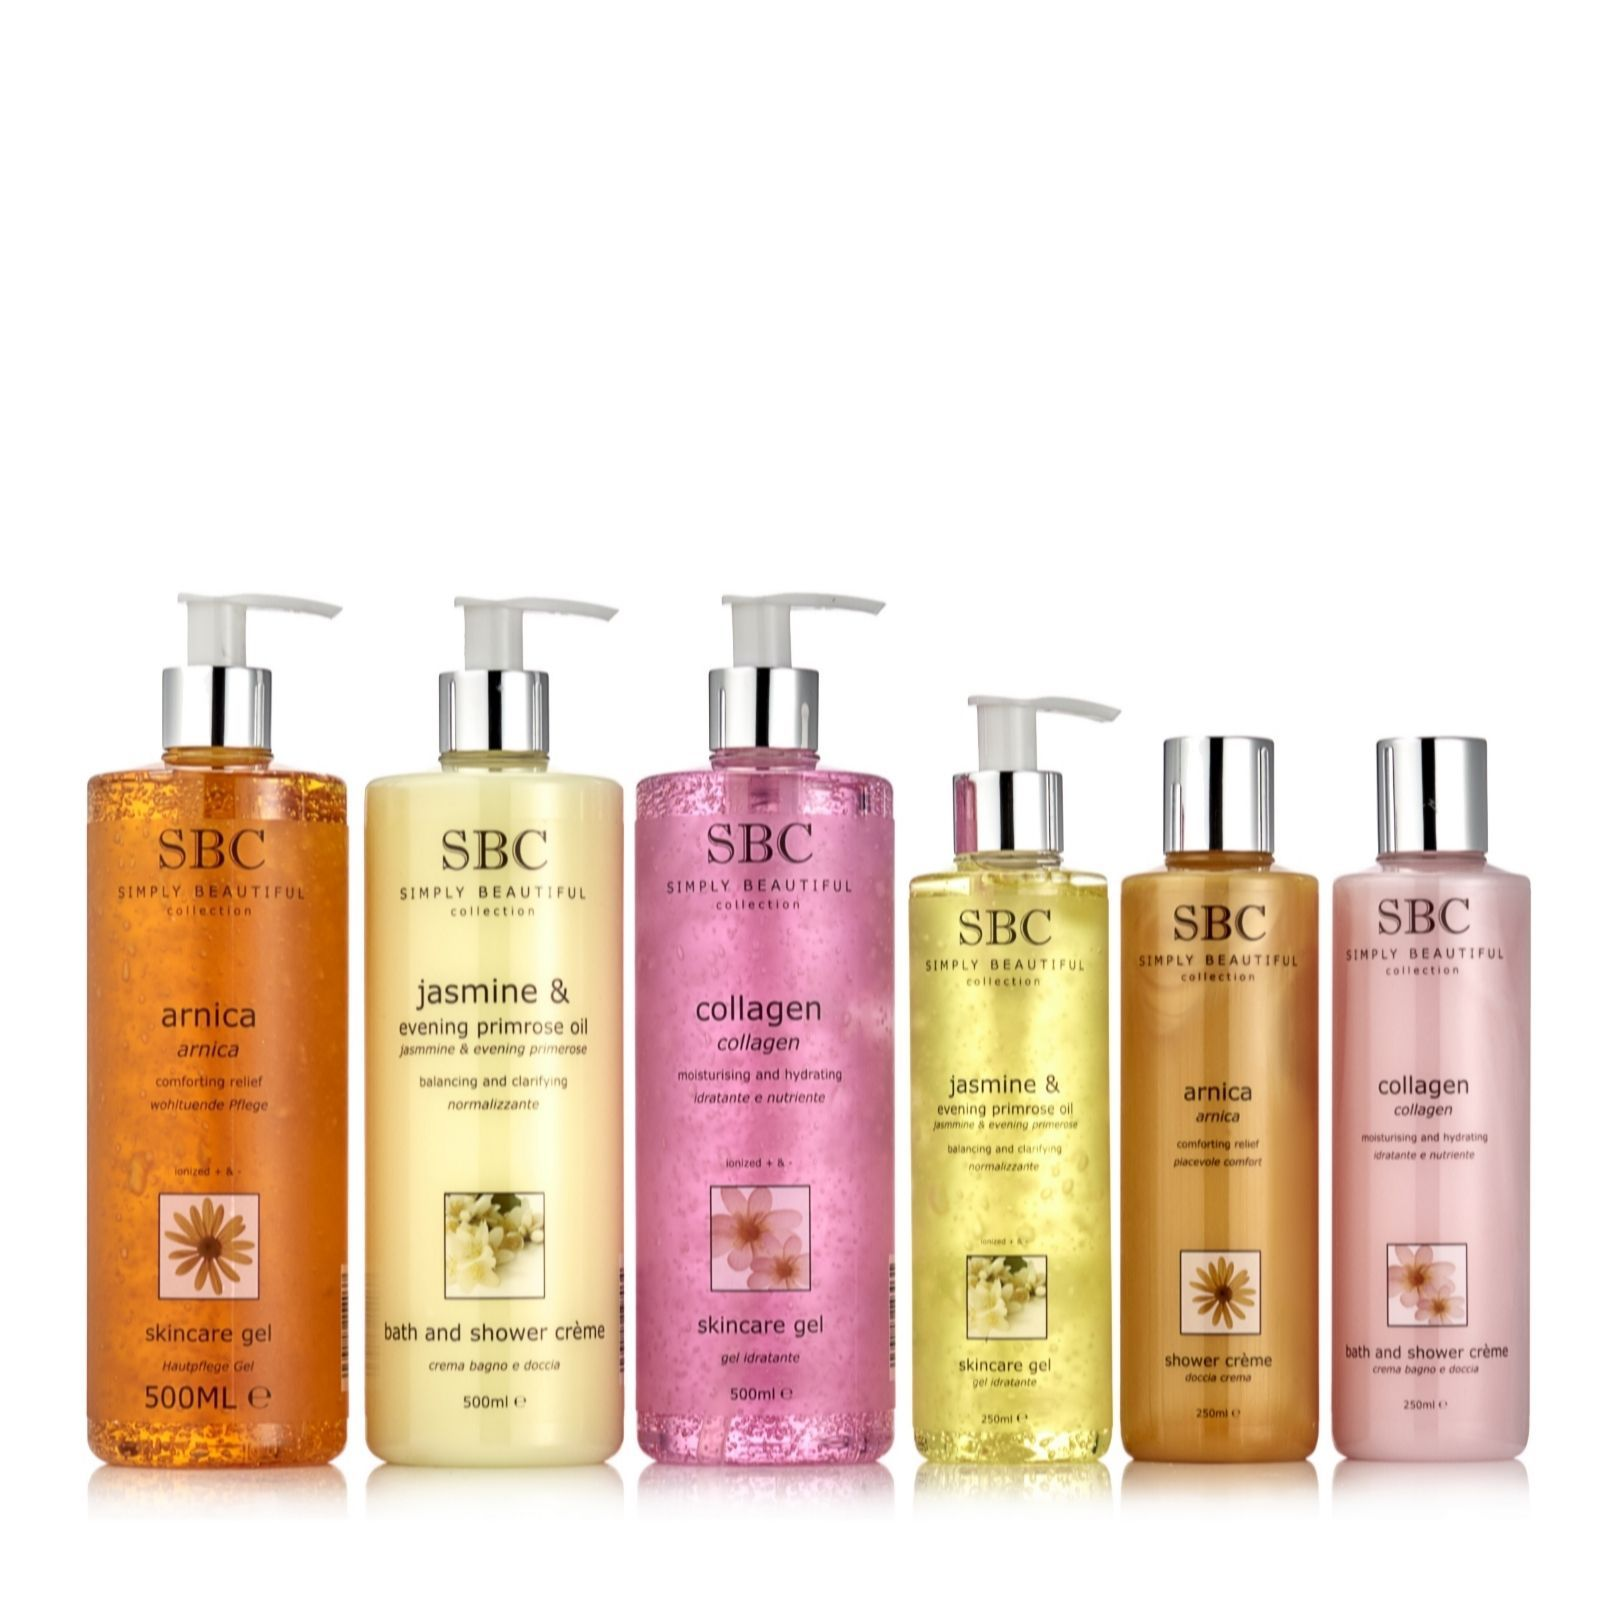 209544 - SBC 6 Piece Shower & Gel Skincare Collection  QVC PRICE: £41.00  EVENT PRICE: £36.84 + P&P: £5.95 or 2 Easy Pays of £18.42 +P&P  This six-piece collection from SBC features customer favourite gels and shower creams in Arnica, Collagen and Jasmine & Evening Primrose formulas. This fantastic set is a great way to discover the benefits of SBC or top up your current collection.